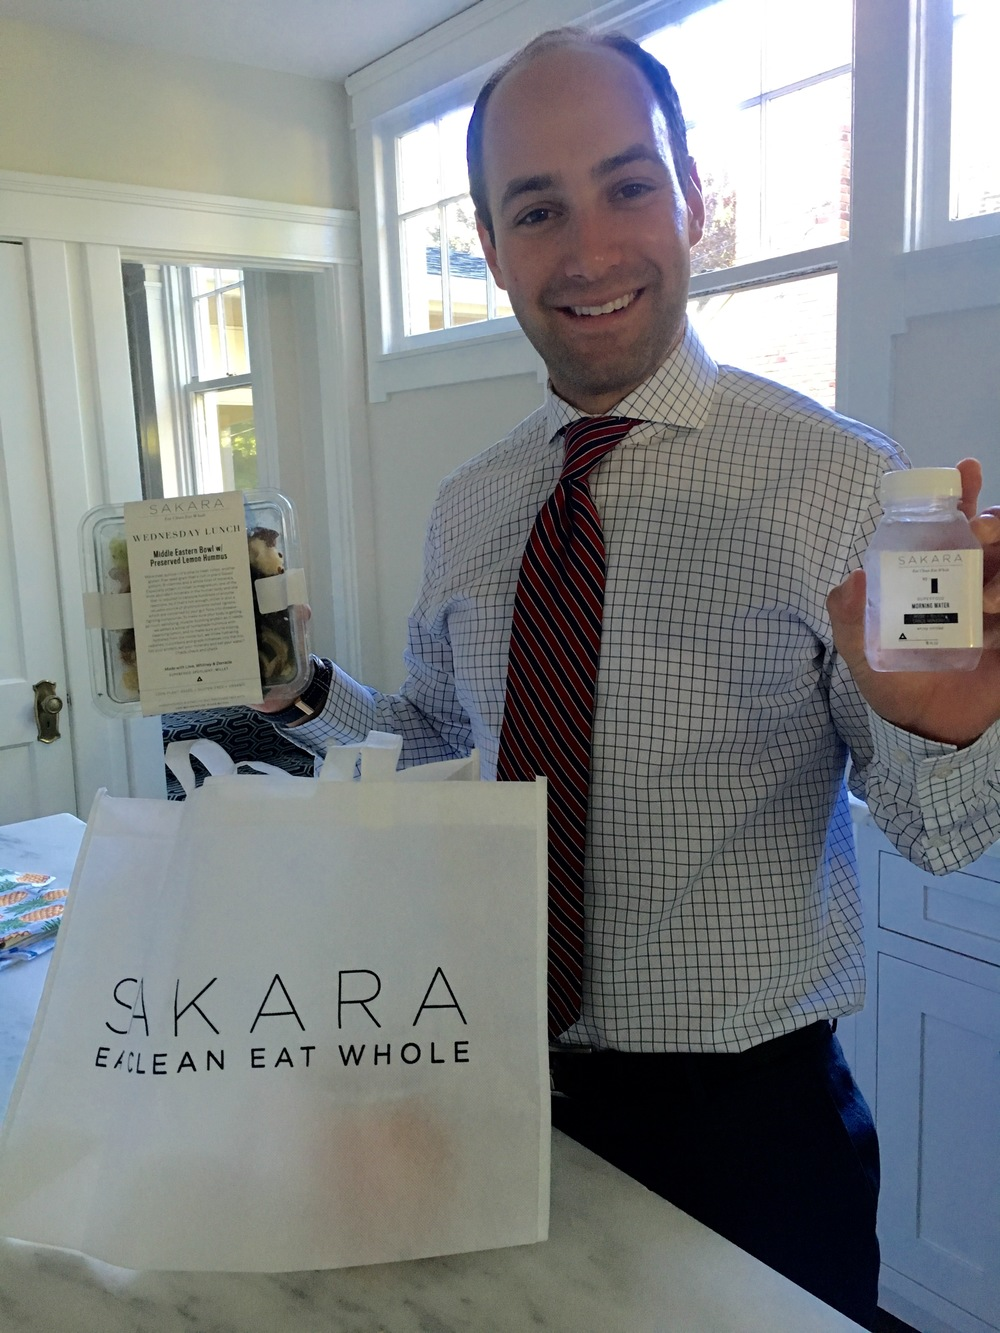 My husband loved Sakara Life and only had to supplement the breakfast meals